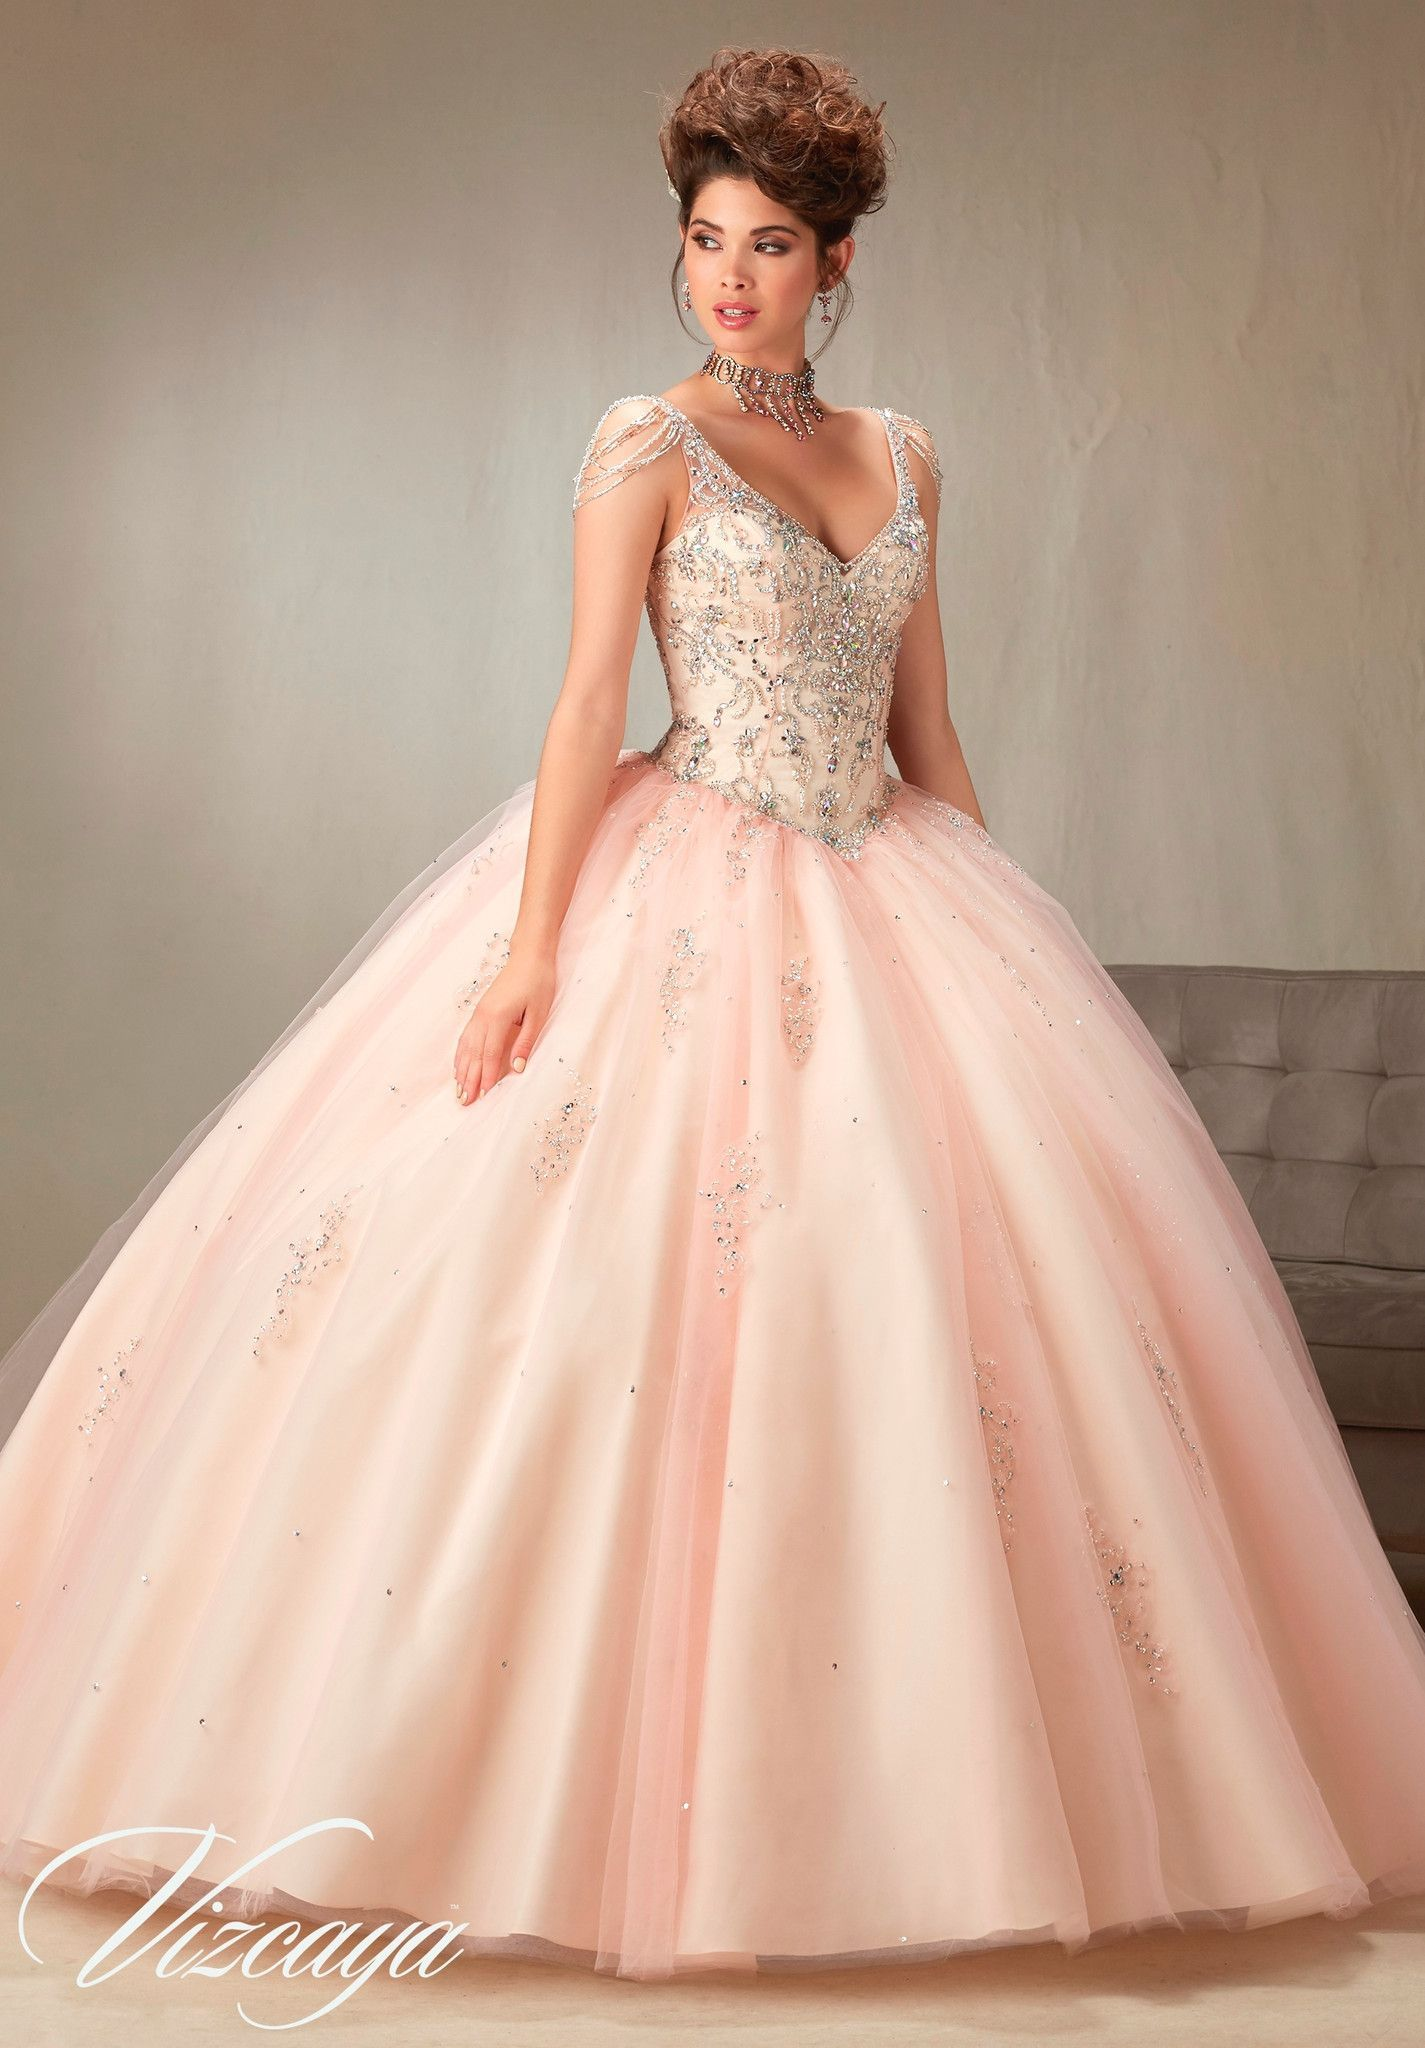 Mori Lee Quinceanera Dress 89065 | Sweet 15, Mori lee and Ball gowns